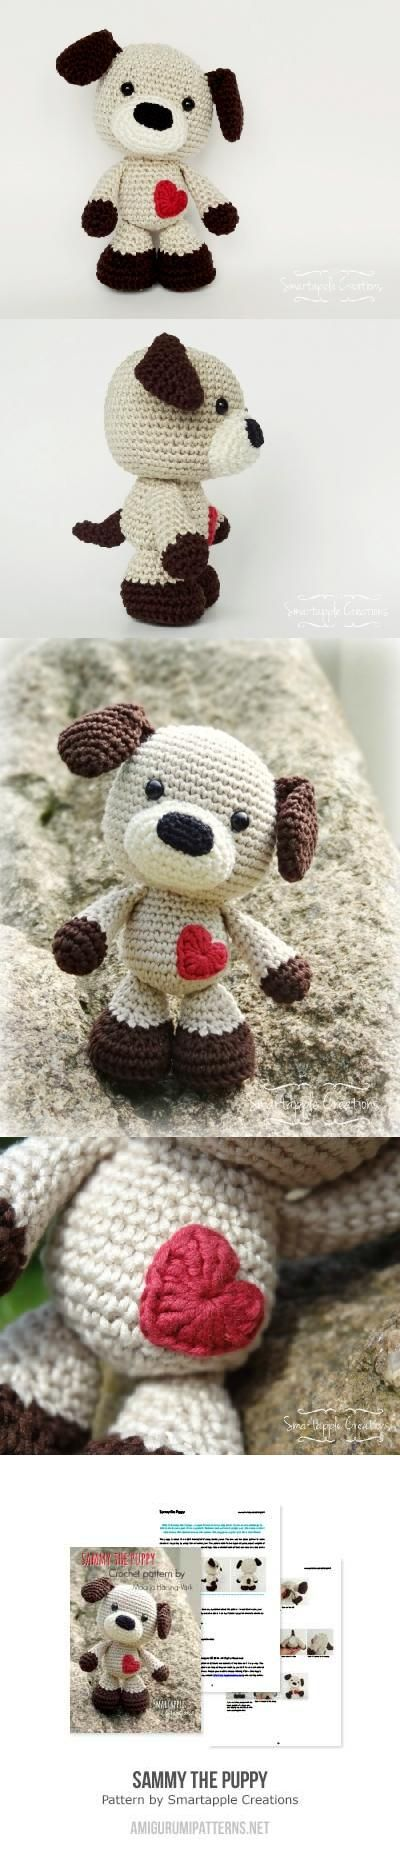 83 best Häkeln und Stricken images on Pinterest | Knit crochet ...